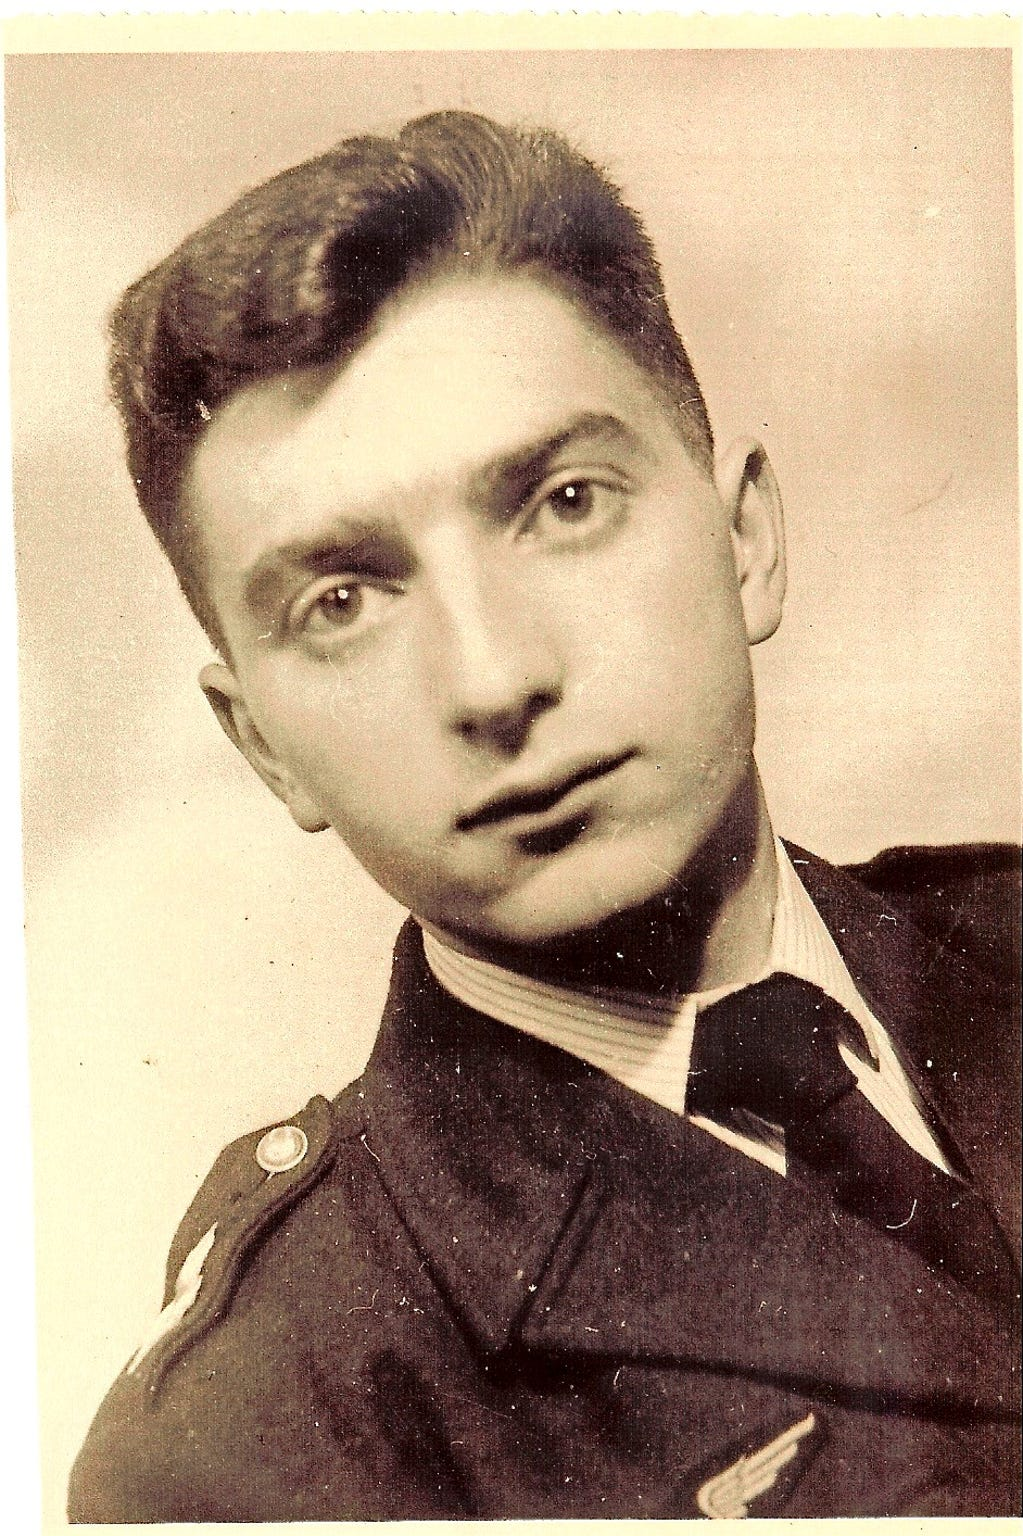 A photo of Leon Malmed in uniform for serving in the French Air Force, taken in 1960.